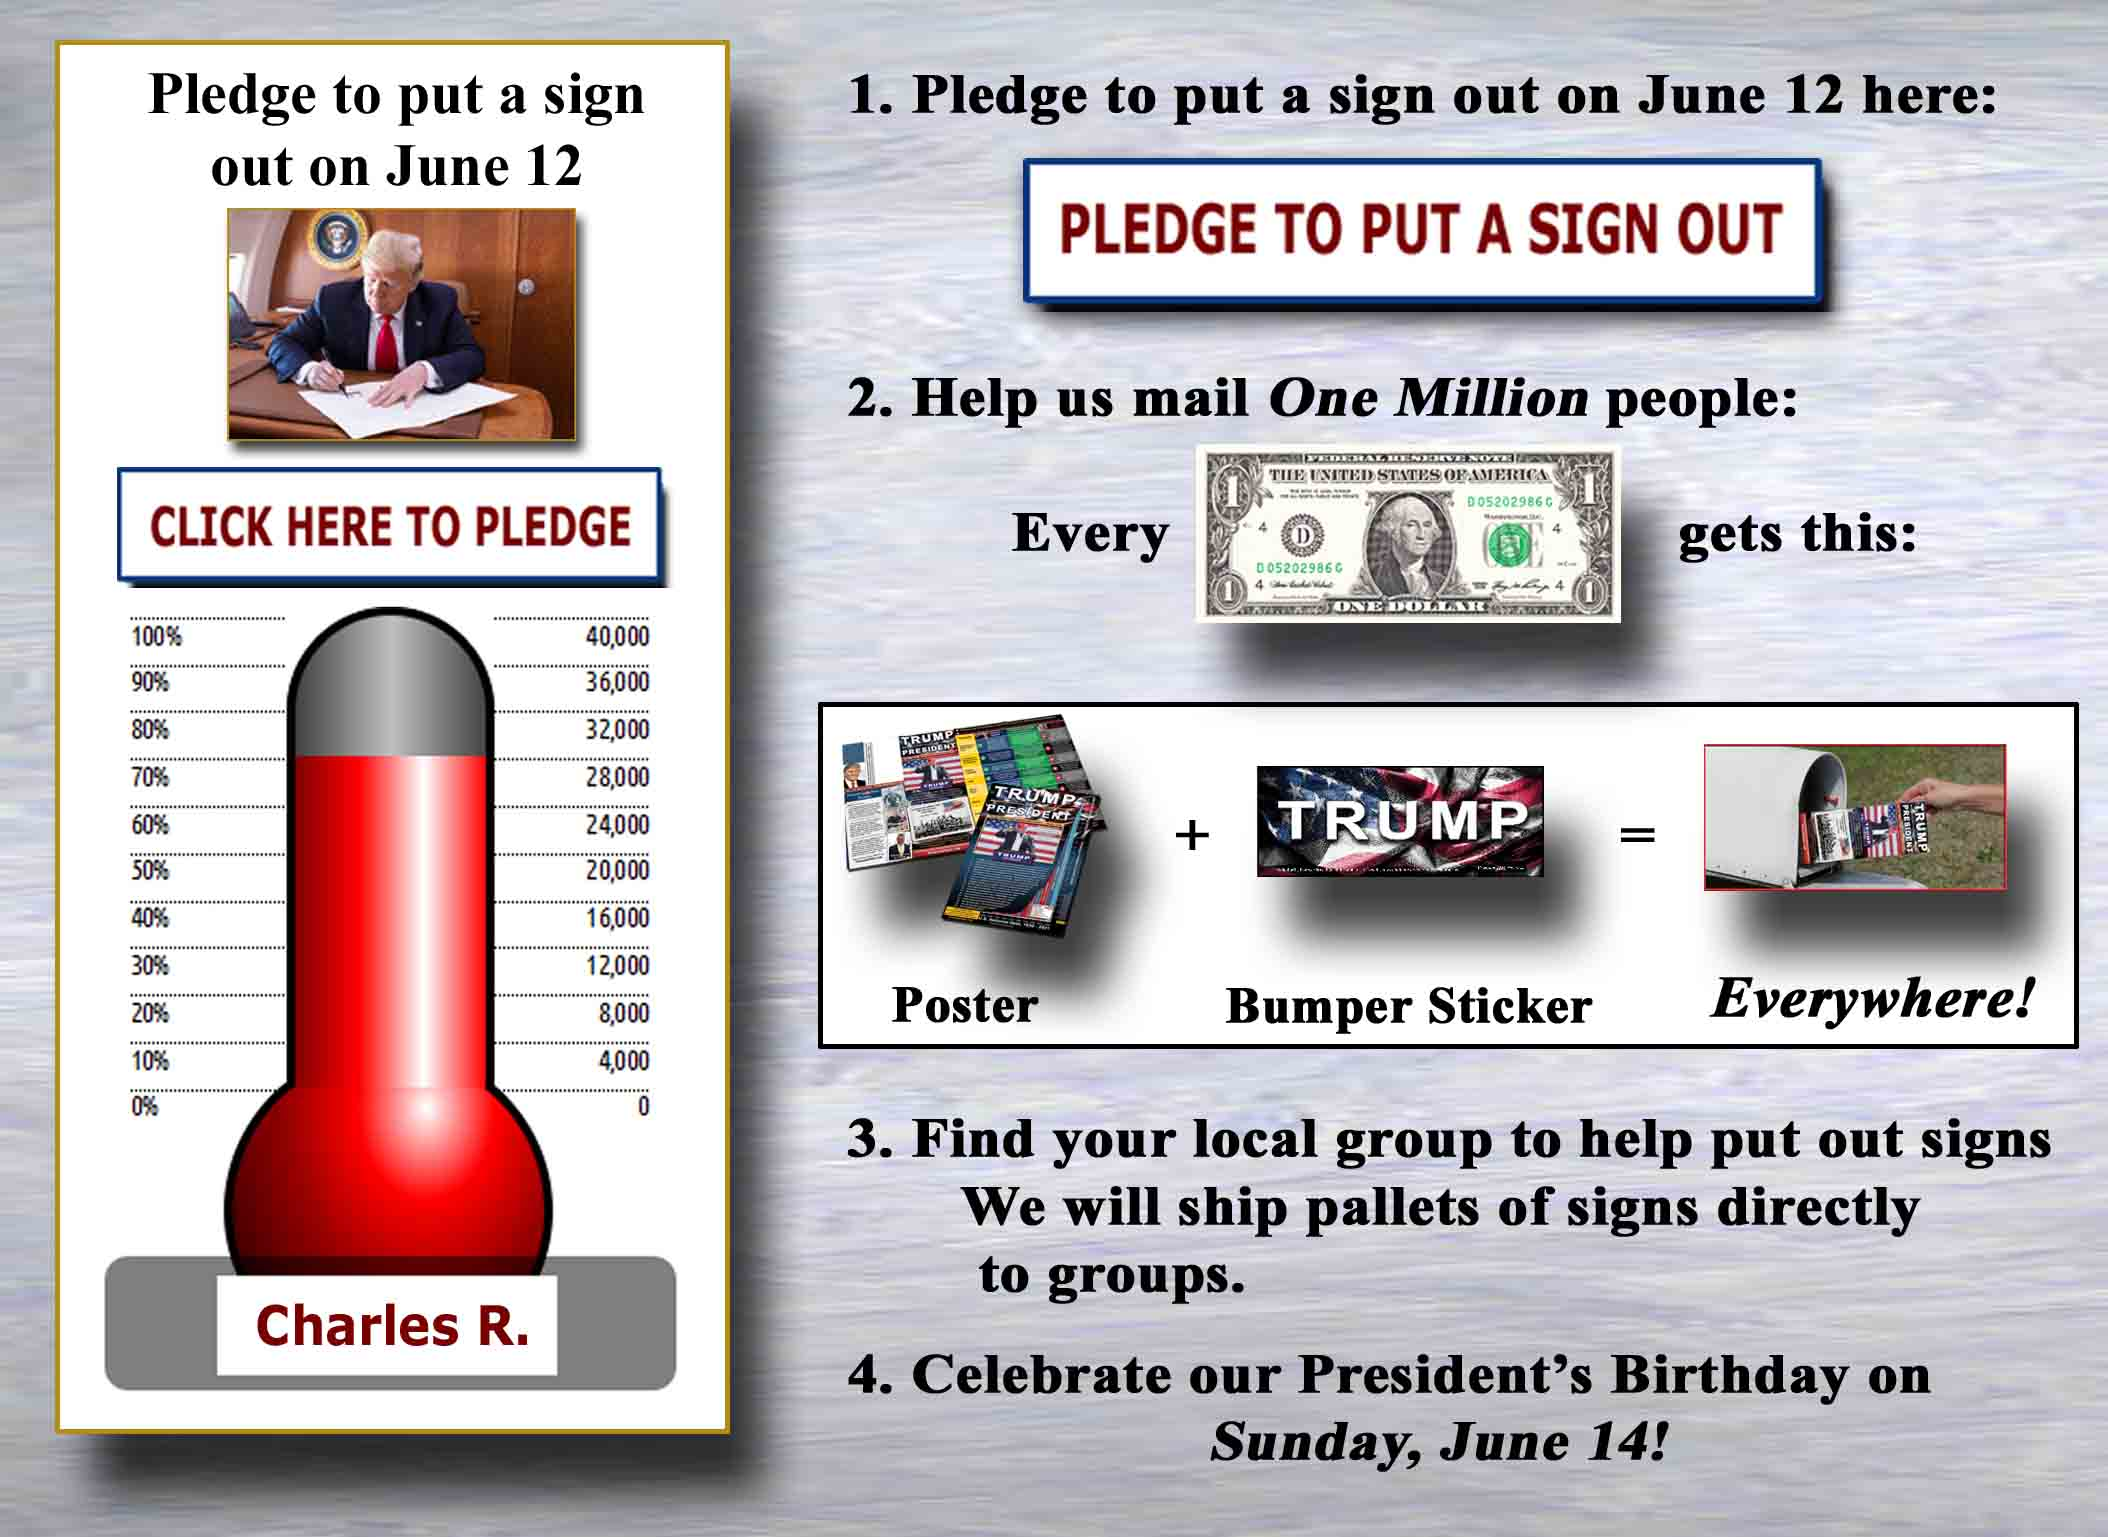 Pledge To Put a Sign Out